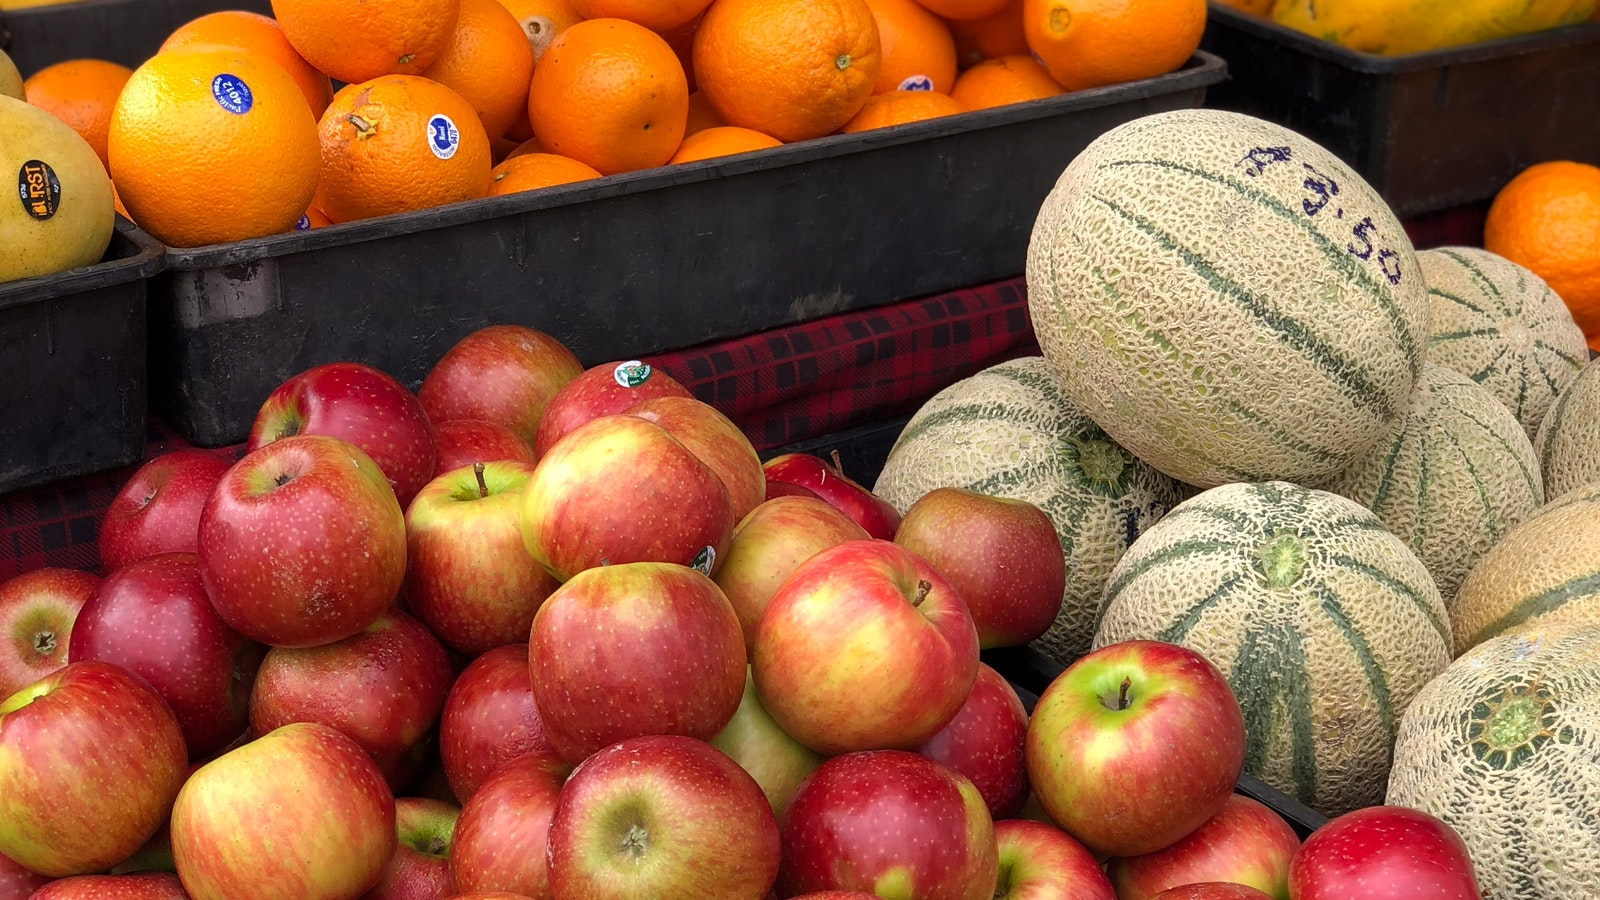 all kinds of local produce can be found at the markets. In this phot there are apples rockmelons anl